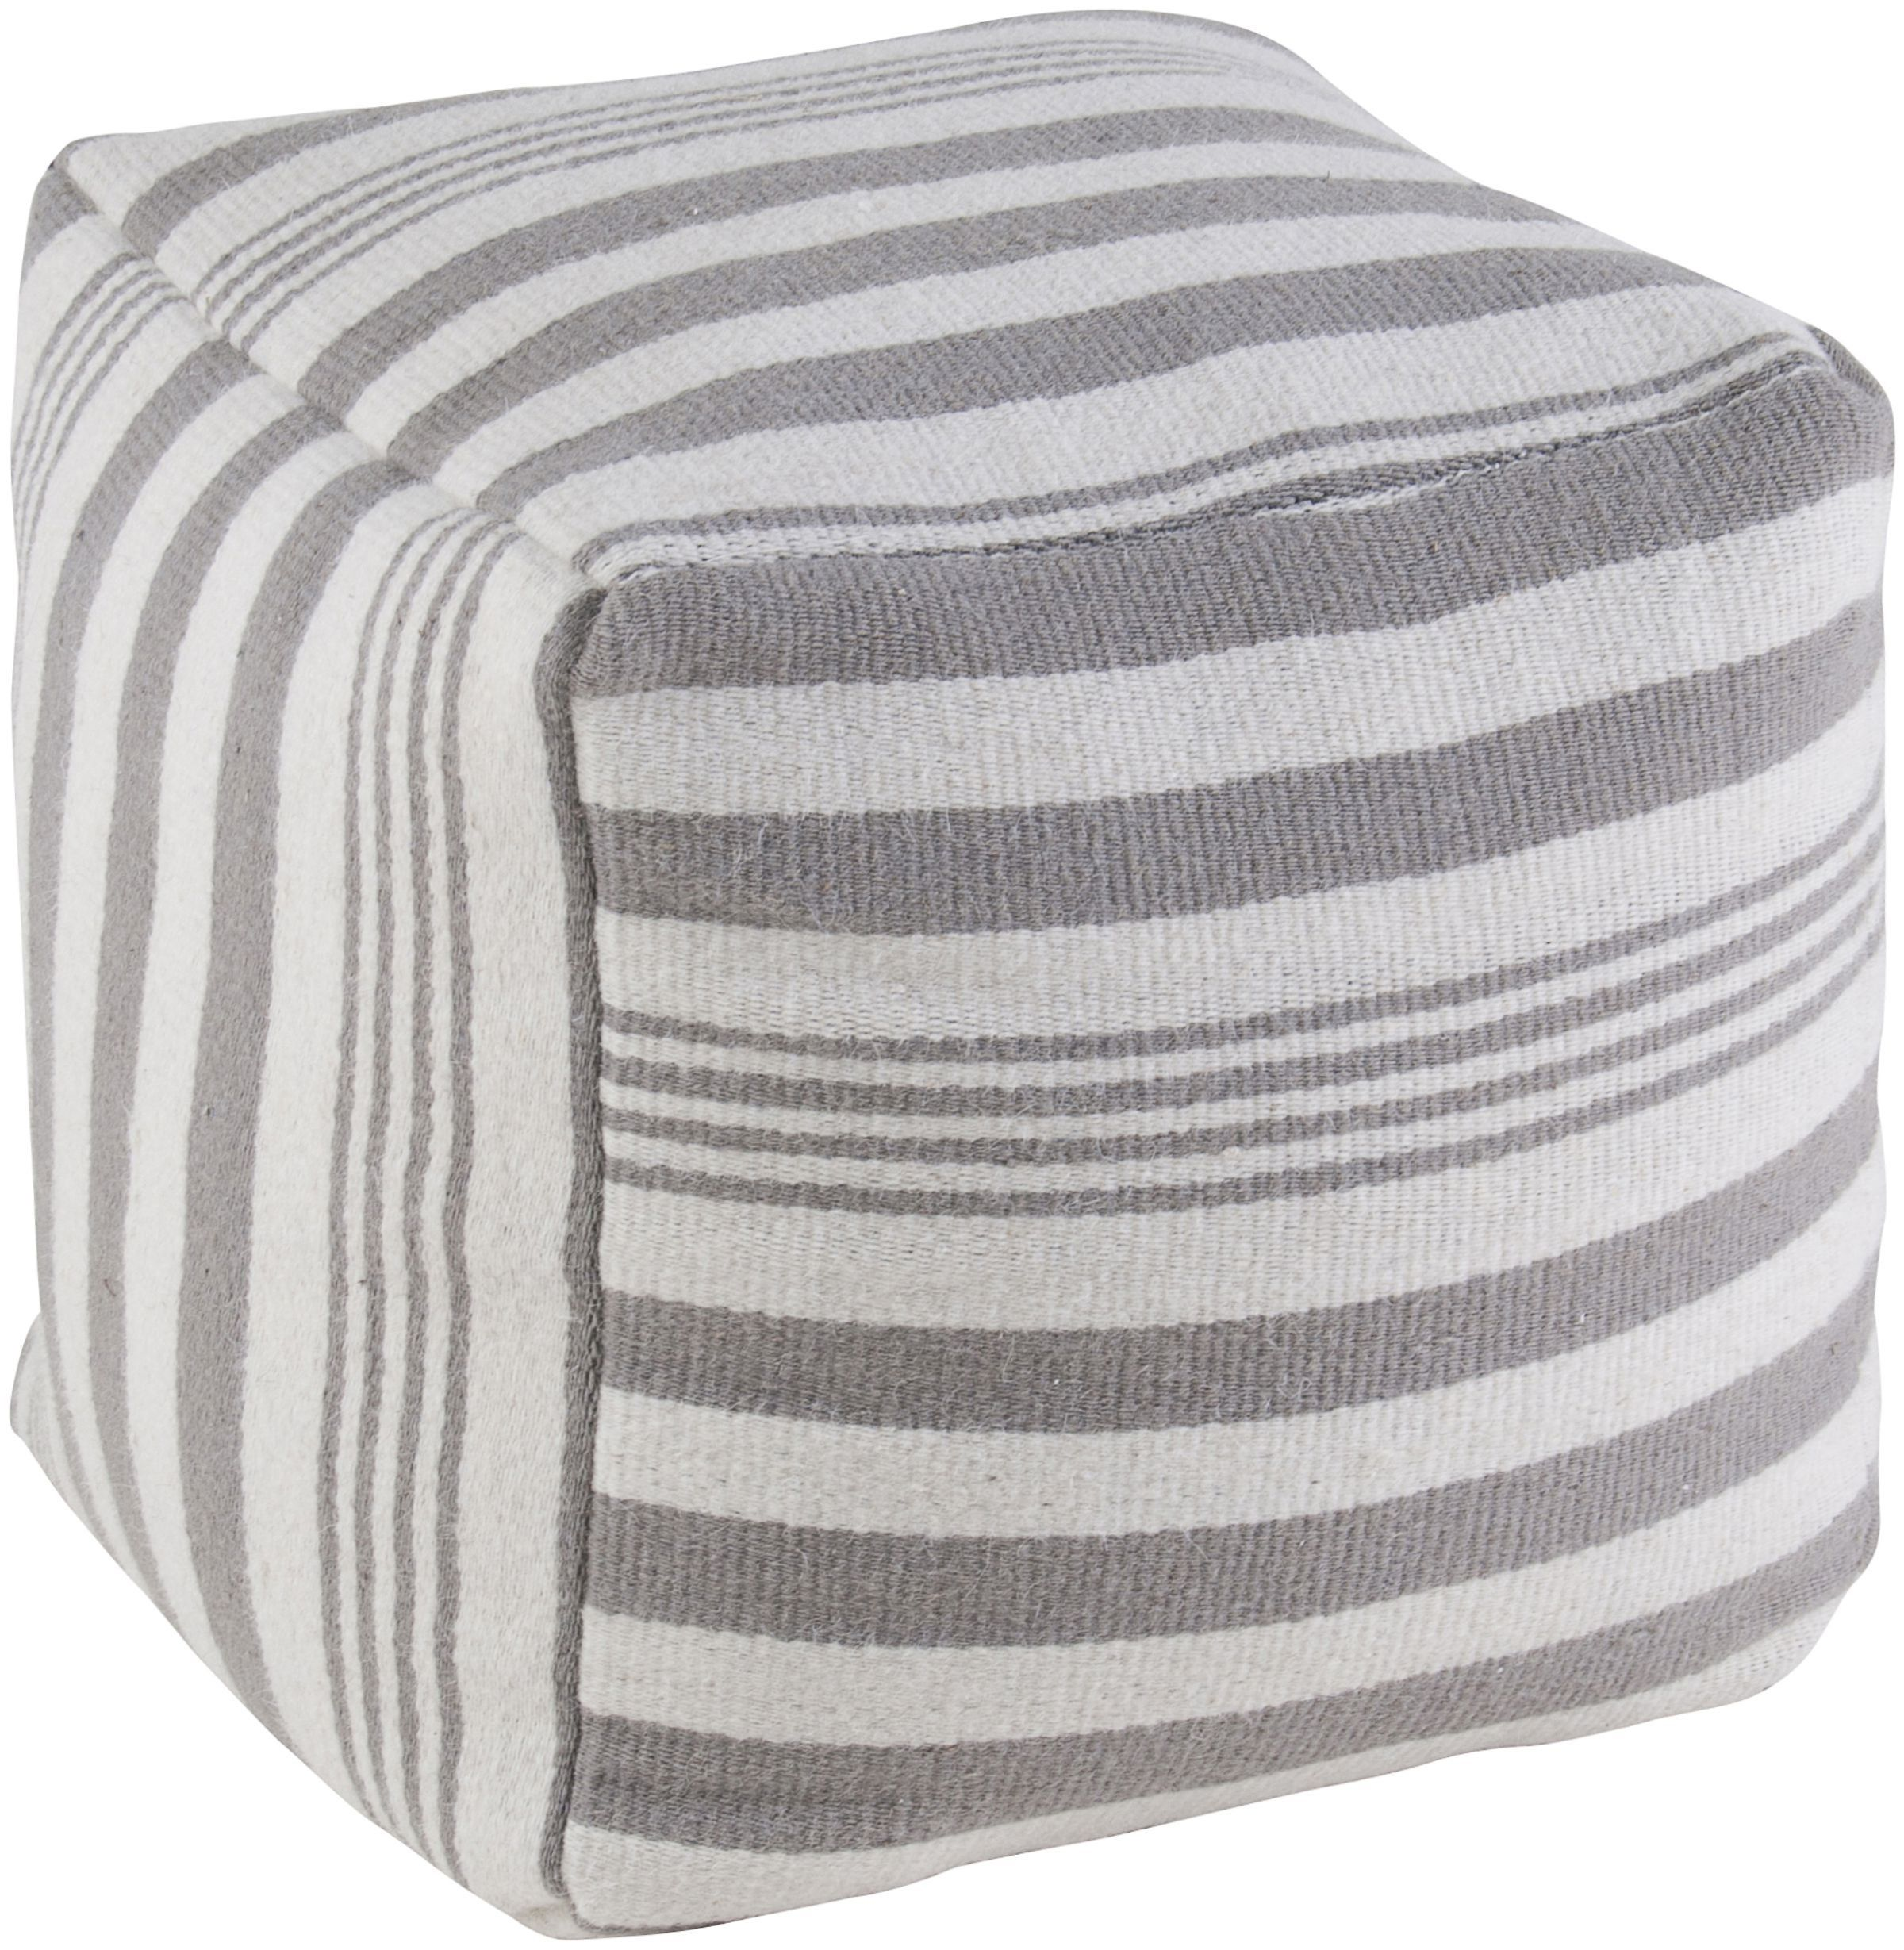 White Pouf Ottoman Amazon  Rizzy Home Striped Wool Pouf Graywhite  $13684